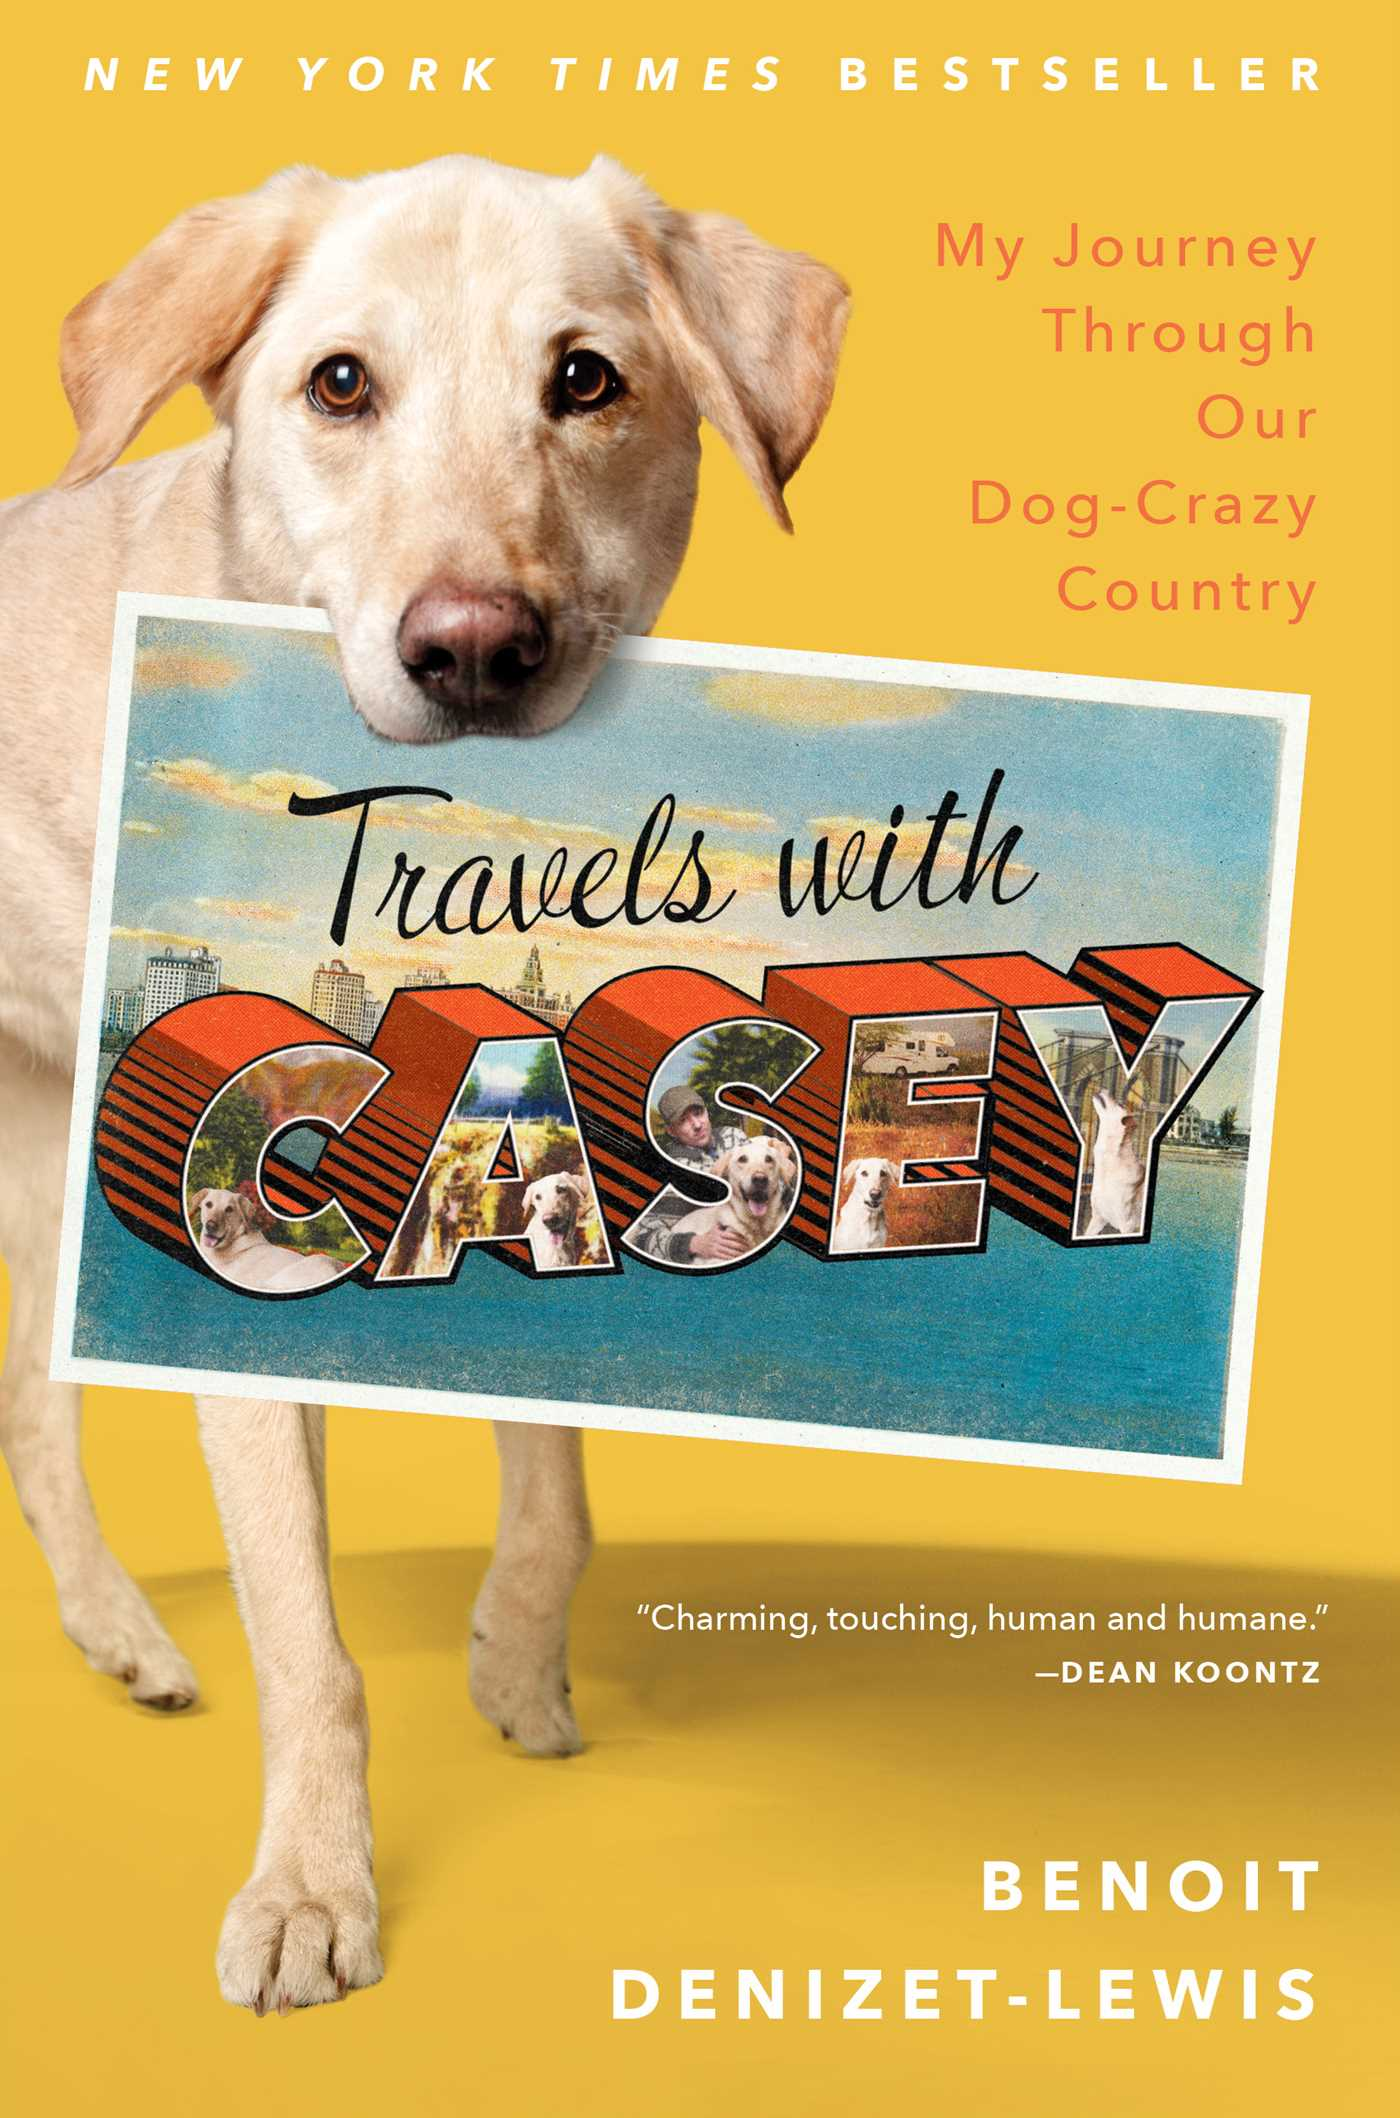 Travels-with-casey-9781439146934_hr